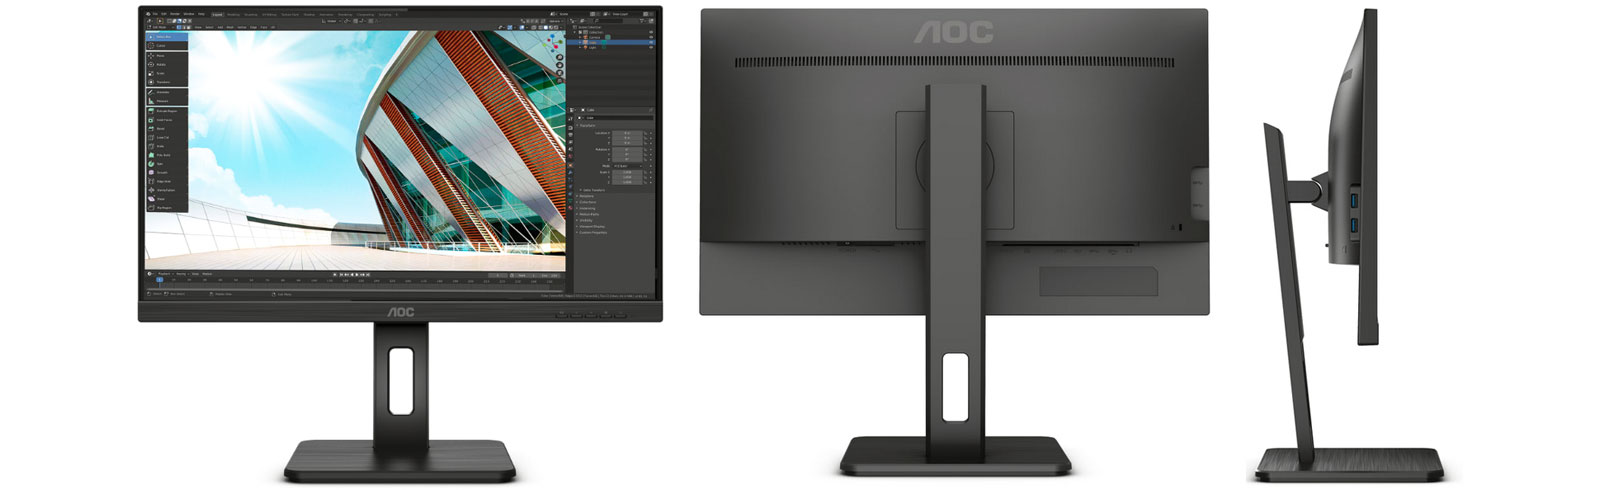 AOC expands its P2 series of monitors worldwide